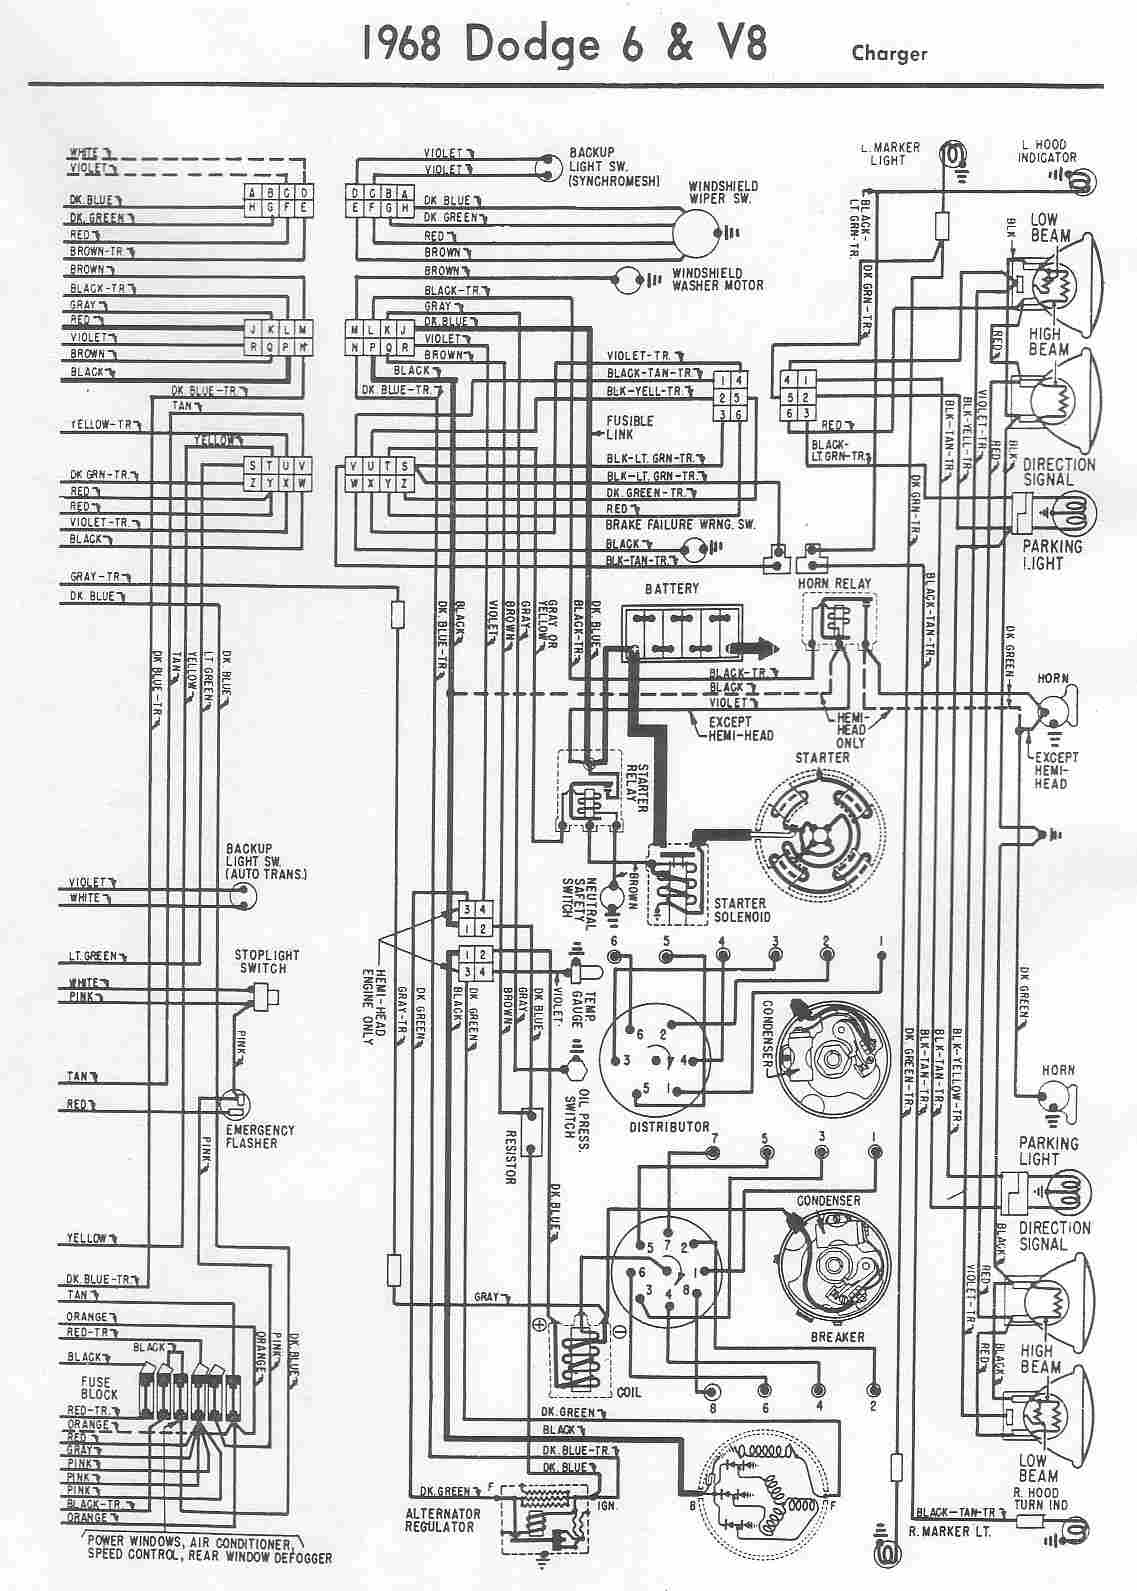 2000 dodge neon ignition switch diagram wiring schematic 1999 neon wiring harness 2000 plymouth neon wiring [ 1137 x 1591 Pixel ]